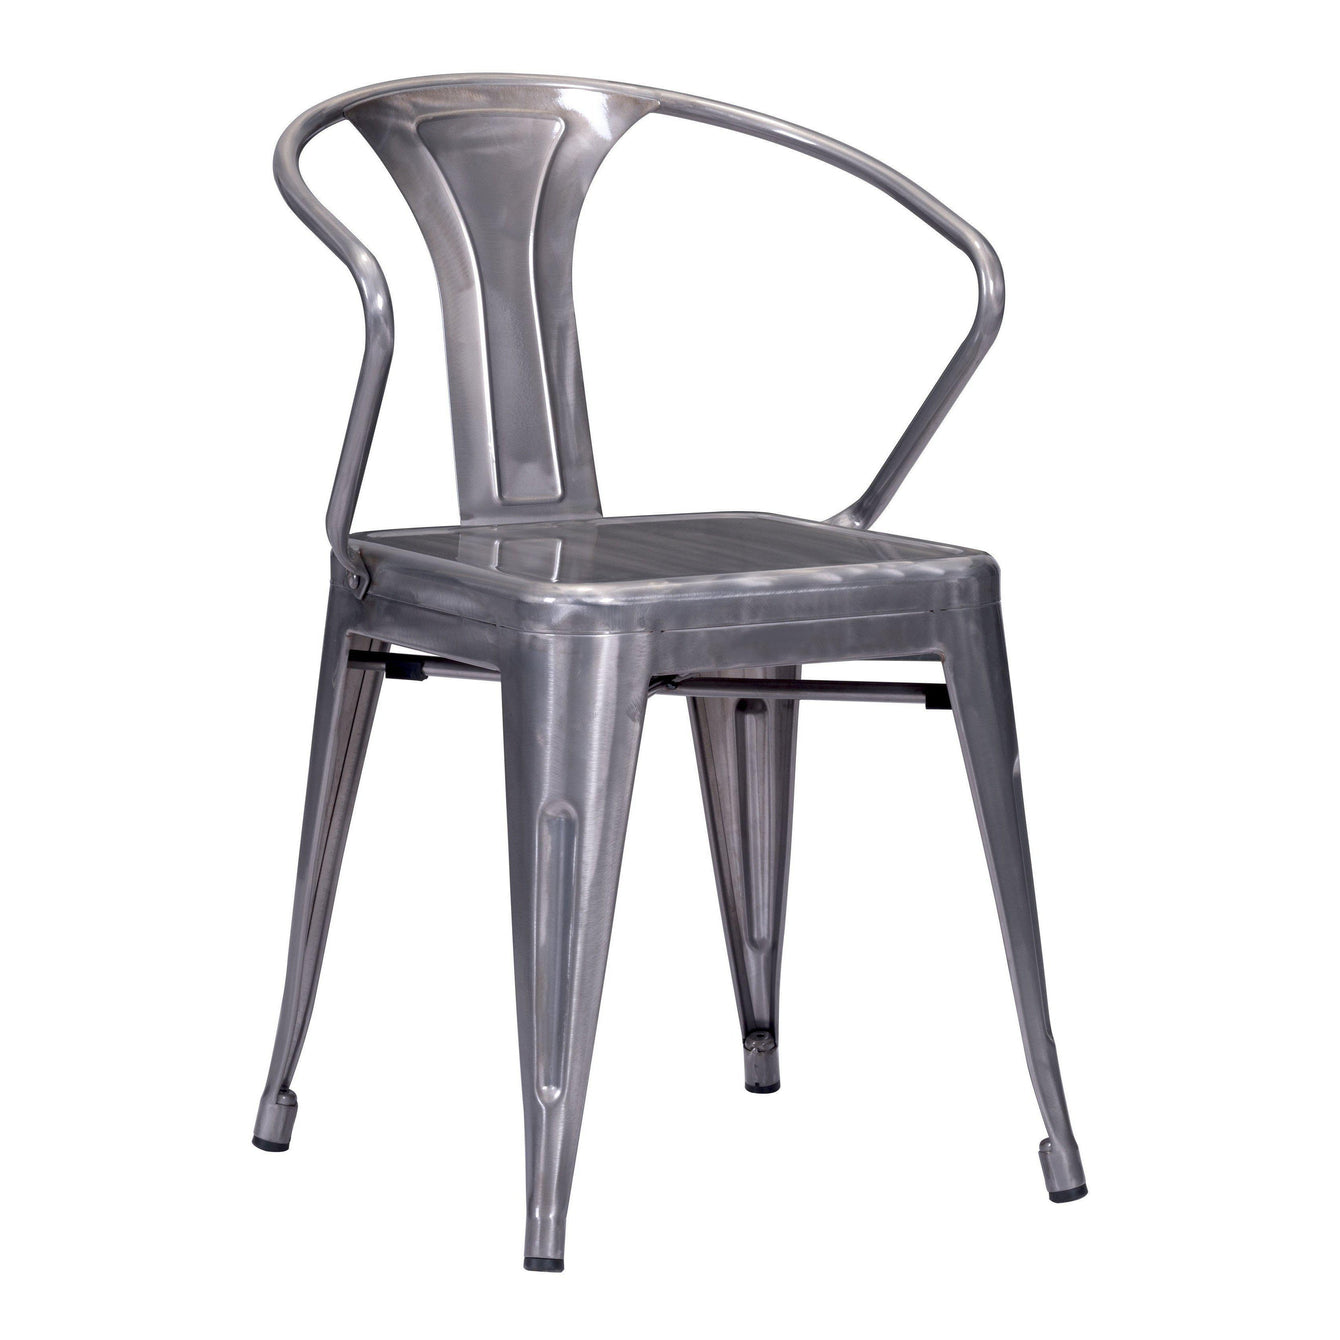 Helix Dining Chair Gunmetal (Set of 2)-Home - Furniture - Dining Chairs-ZUO MODERN-Peccadilly